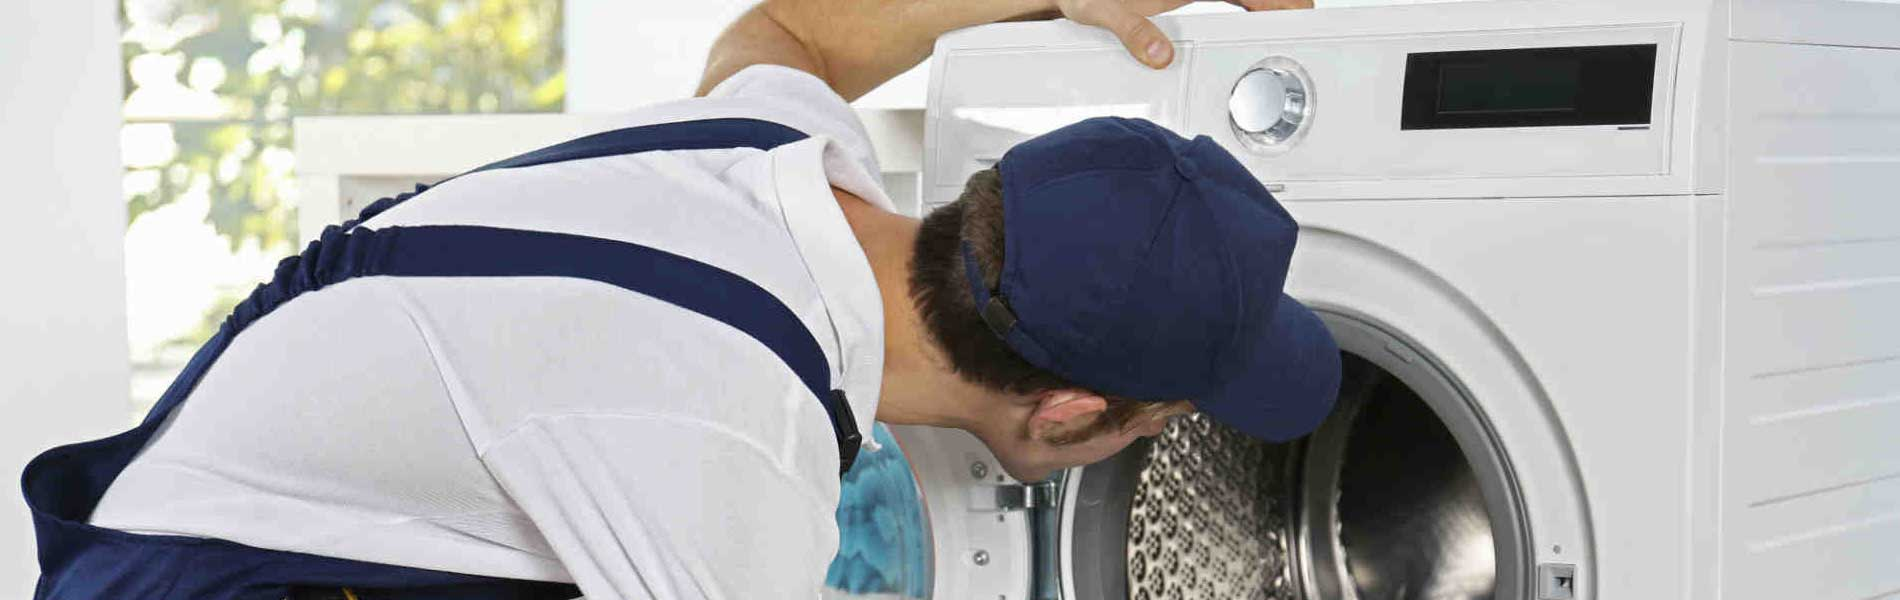 LG Washing Machine Mechanic in Chitlapakkam